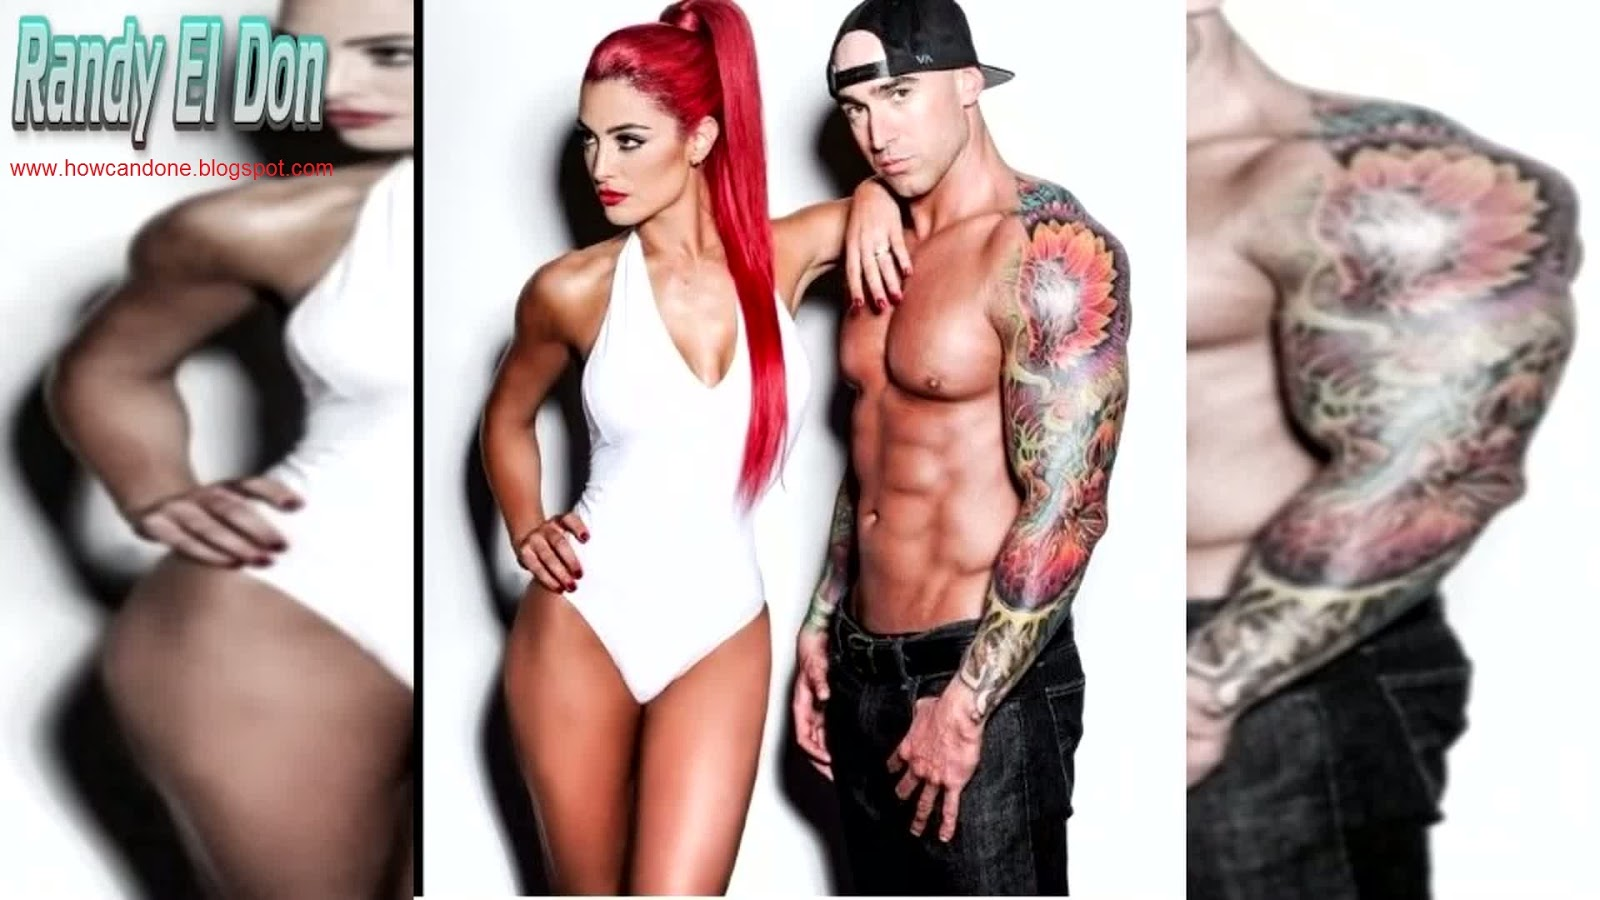 wwe superstars and divas dating The nxt divas - the female wrestlers of nxt wrestling,  featuring rookies from fcw competing to become wwe superstars  is said to be dating wwe superstar cody.